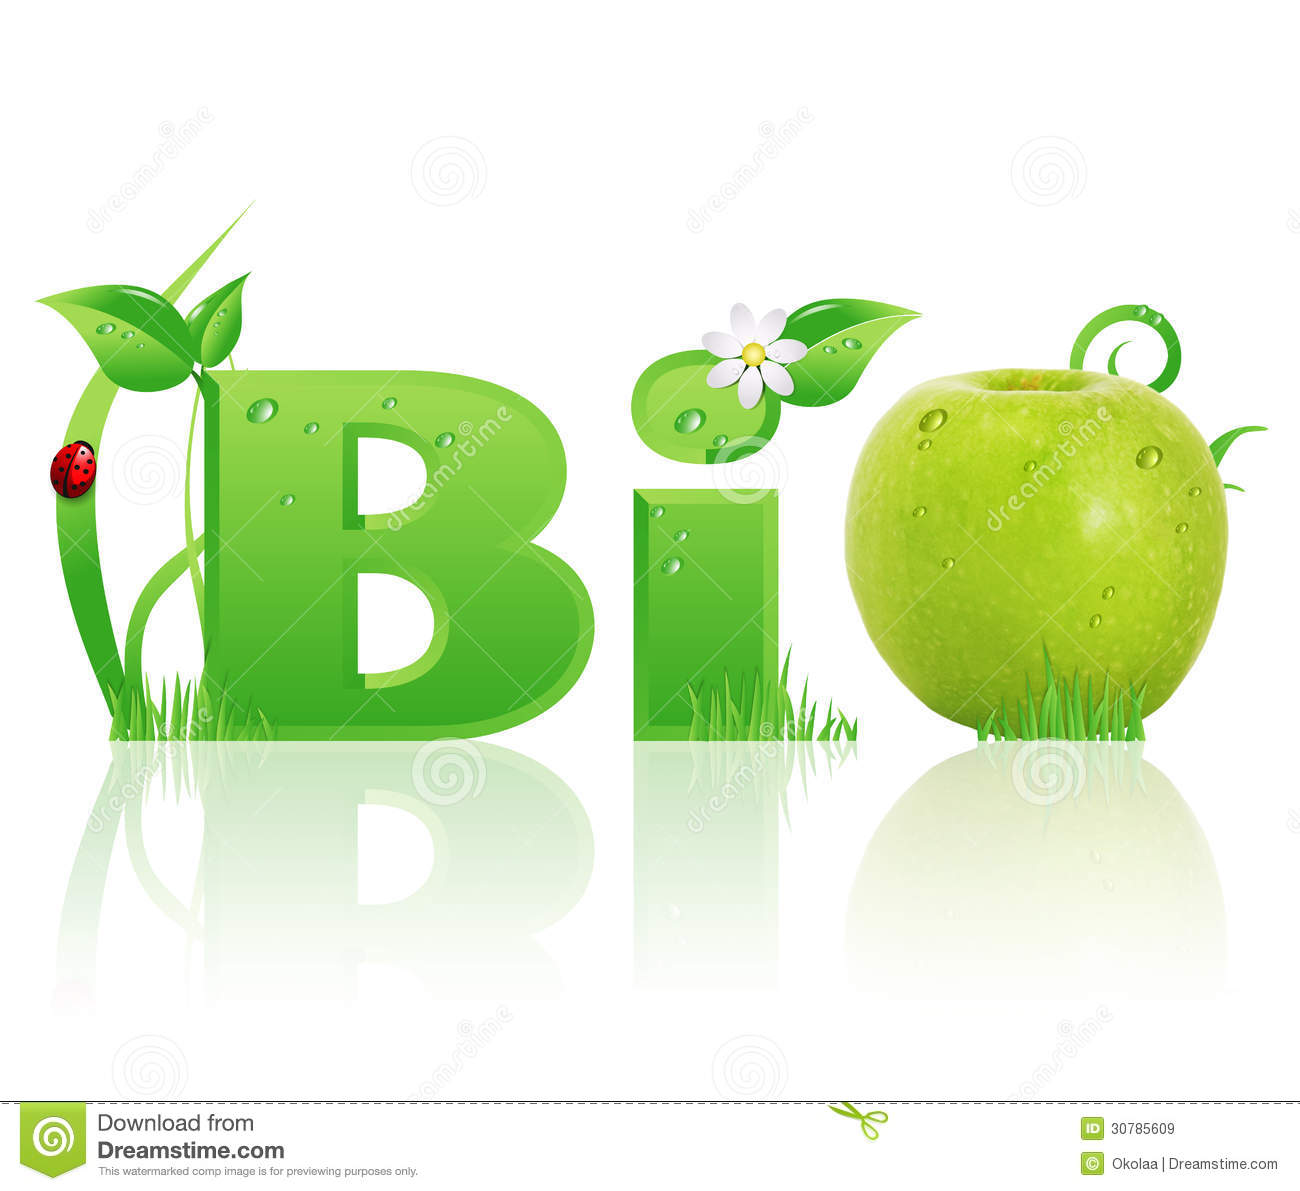 biology ecology design Ecology is a large theme, and often not given full coverage in a biology class due to time constraints below are some basic lessons on ecology and environmental science.